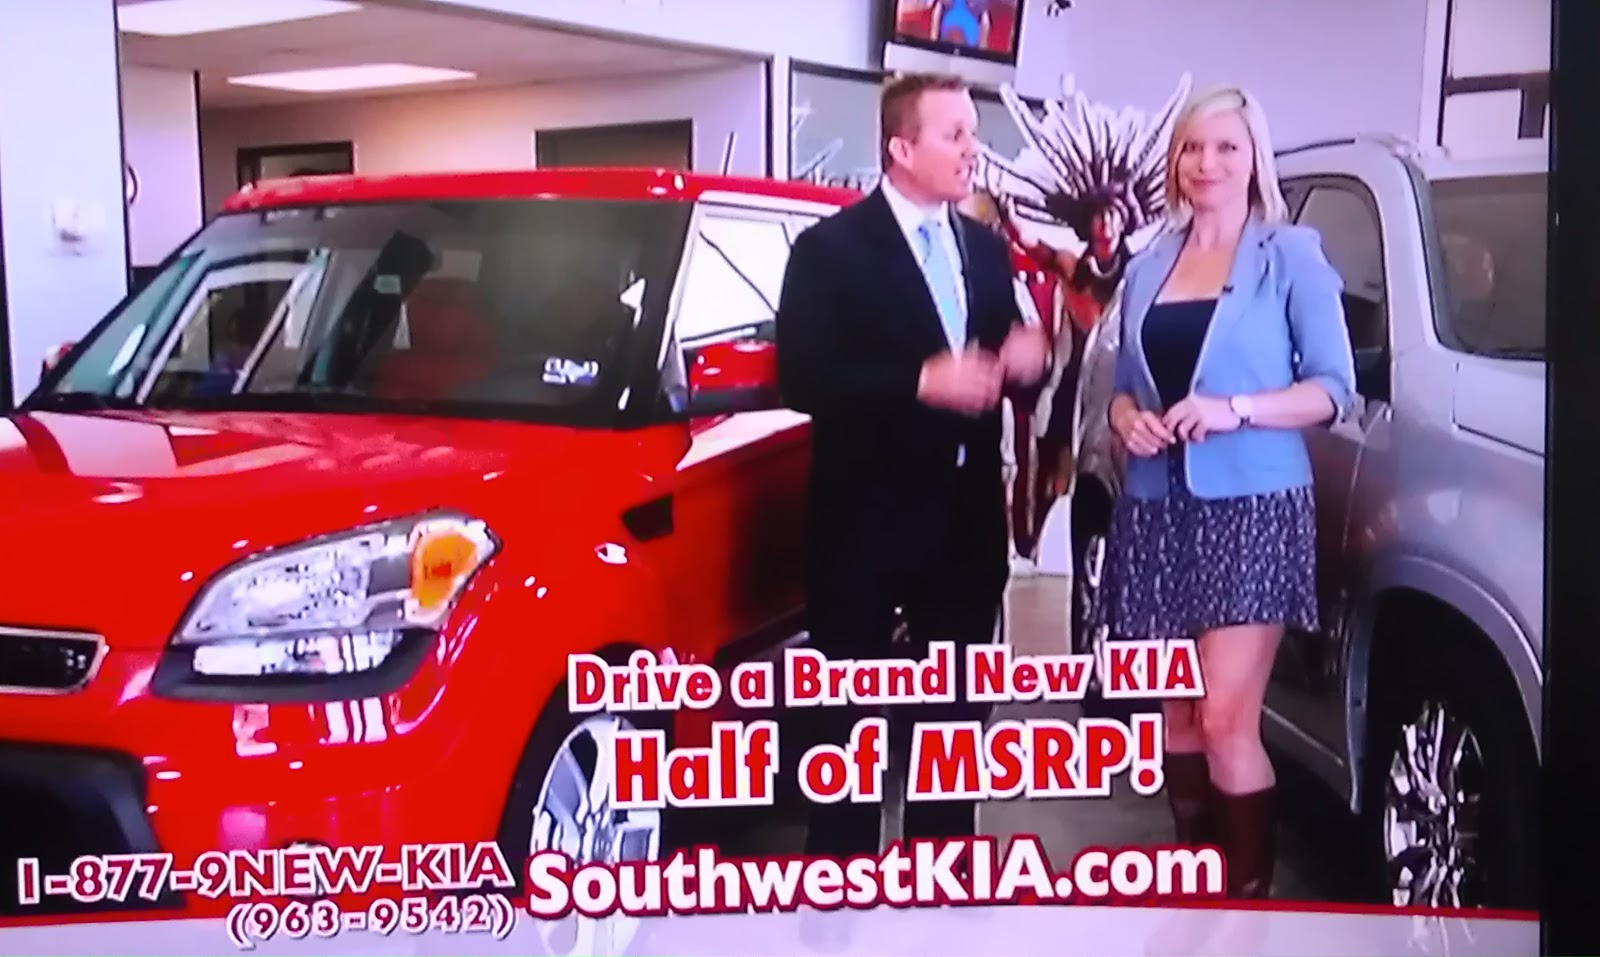 What Would Cubes Do?: Is It Just Me or Is the Southwest Kia Girl